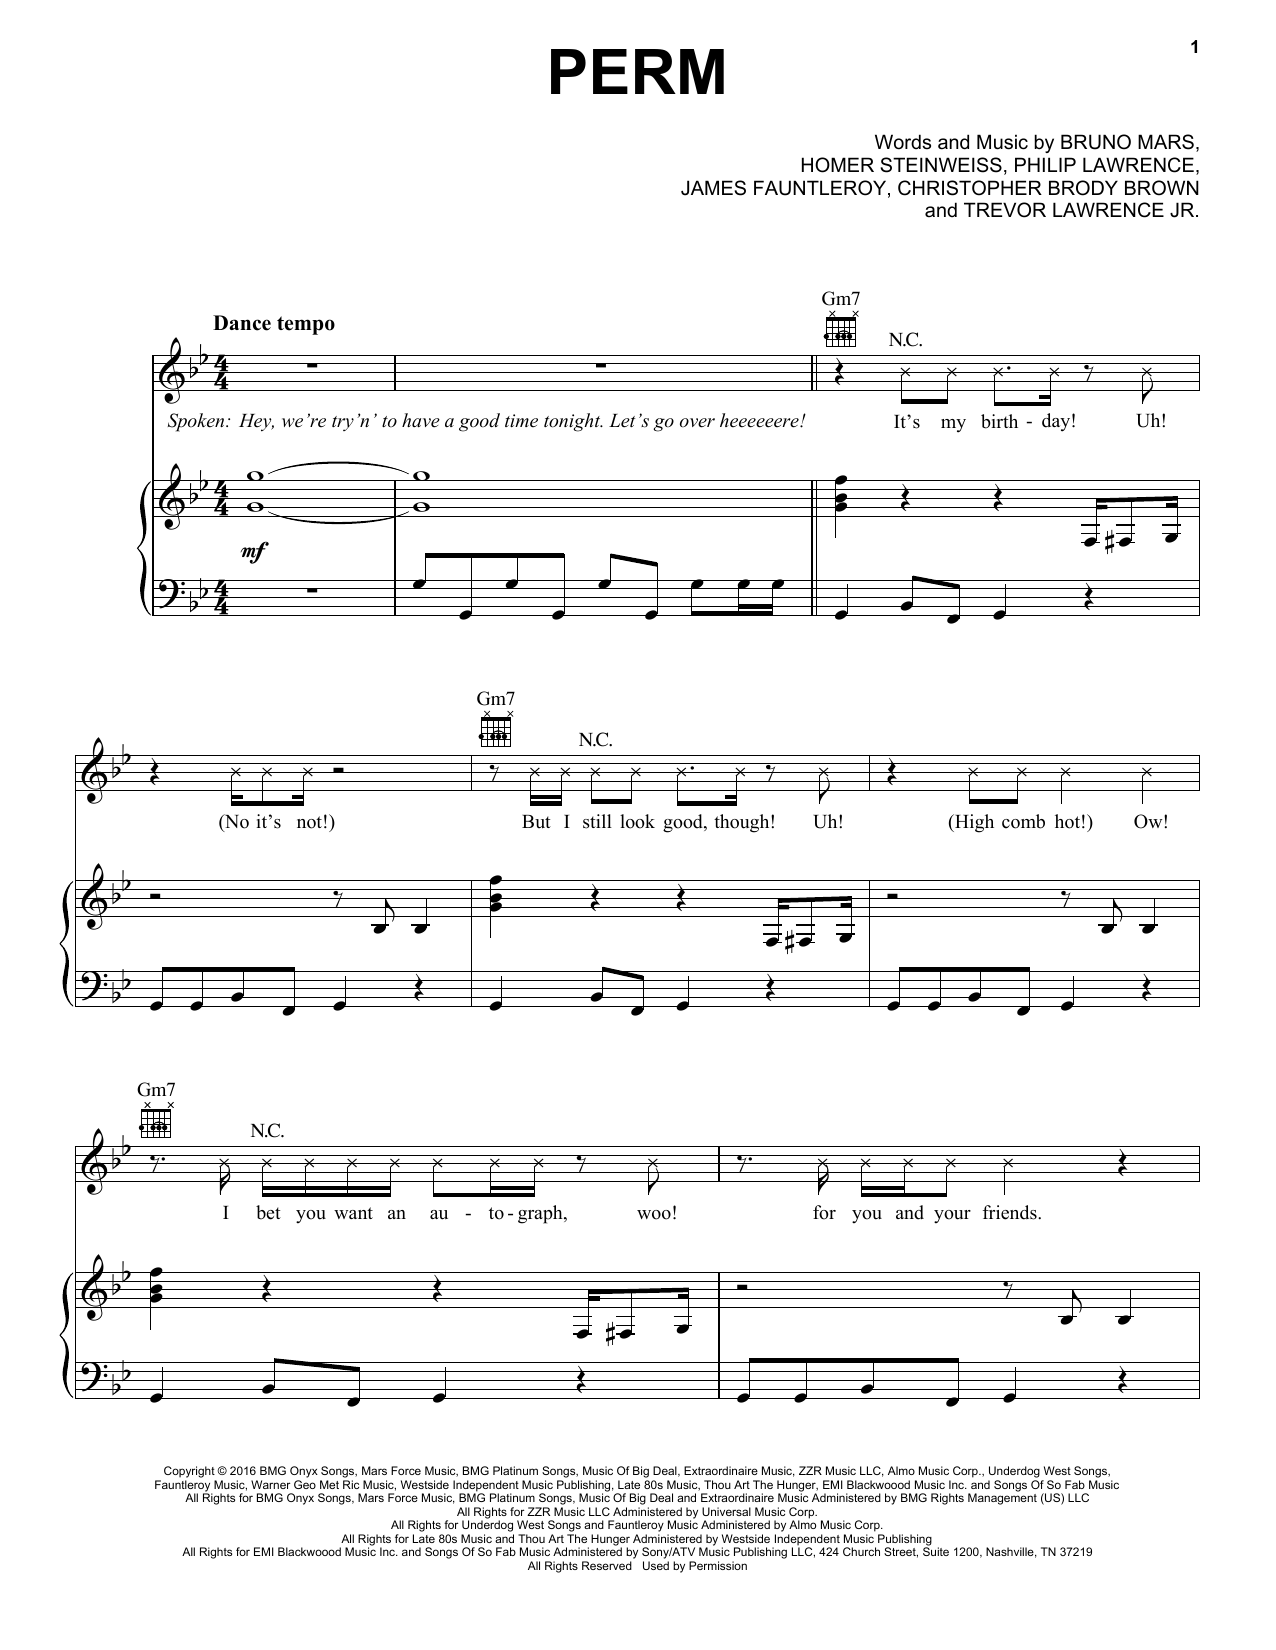 Bruno Mars Perm sheet music notes and chords